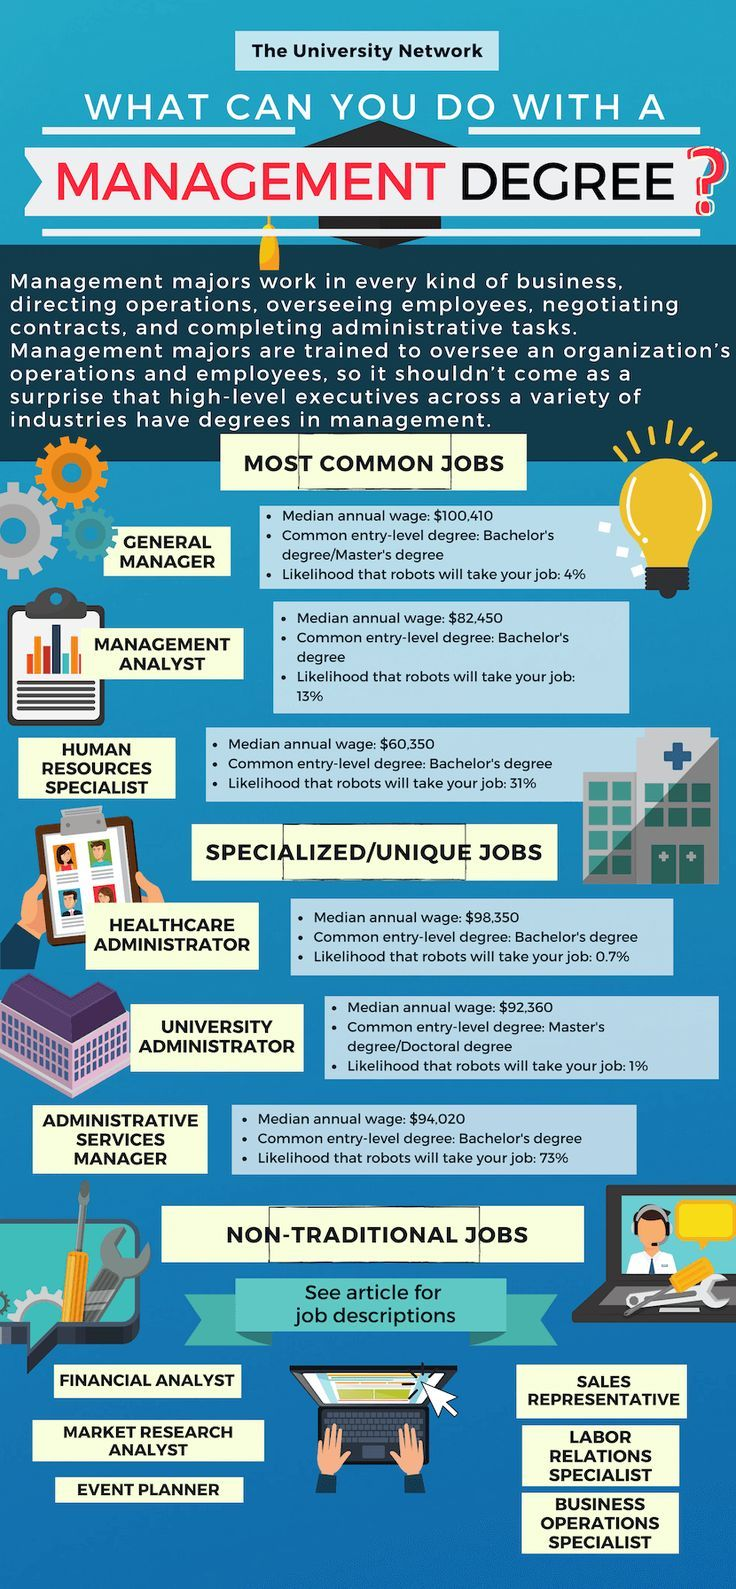 12 Jobs For Management Majors (With images) Healthcare